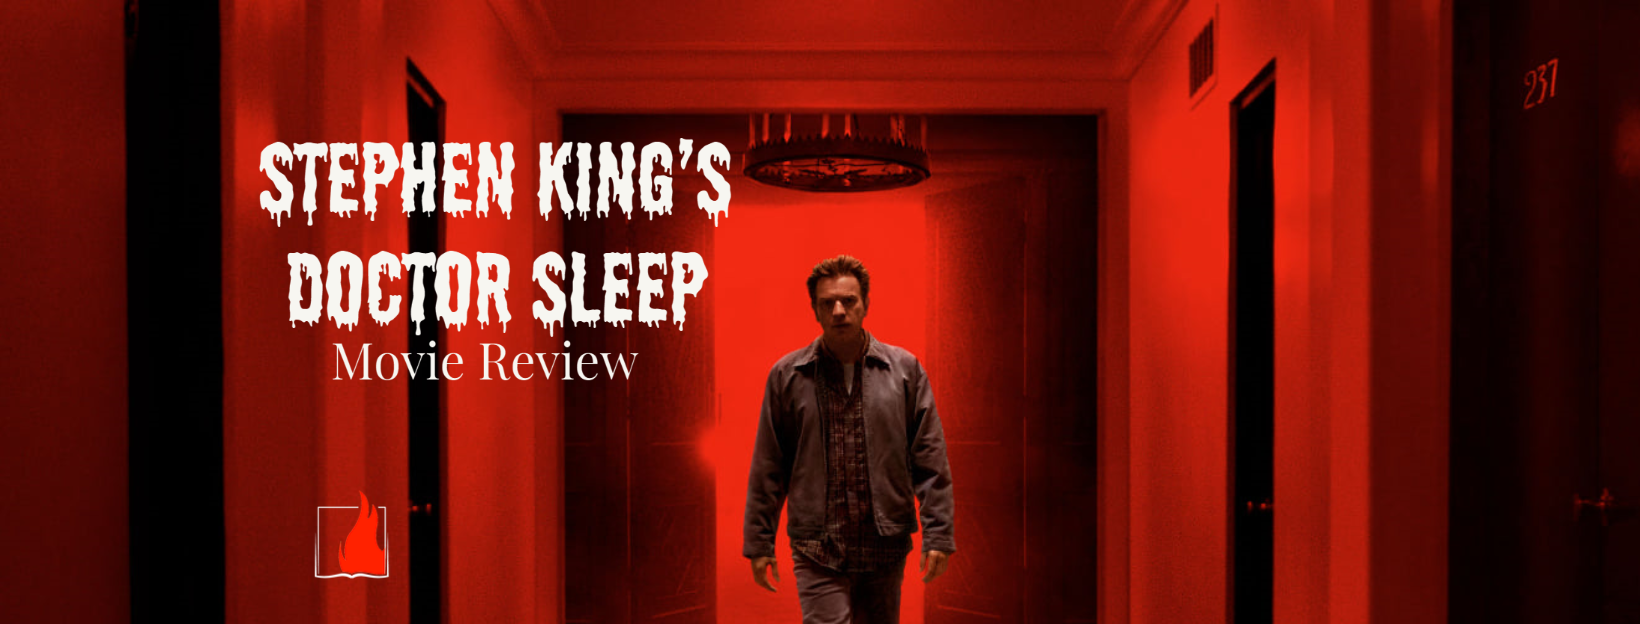 Movie Review of Stephen King's Doctor Sleep